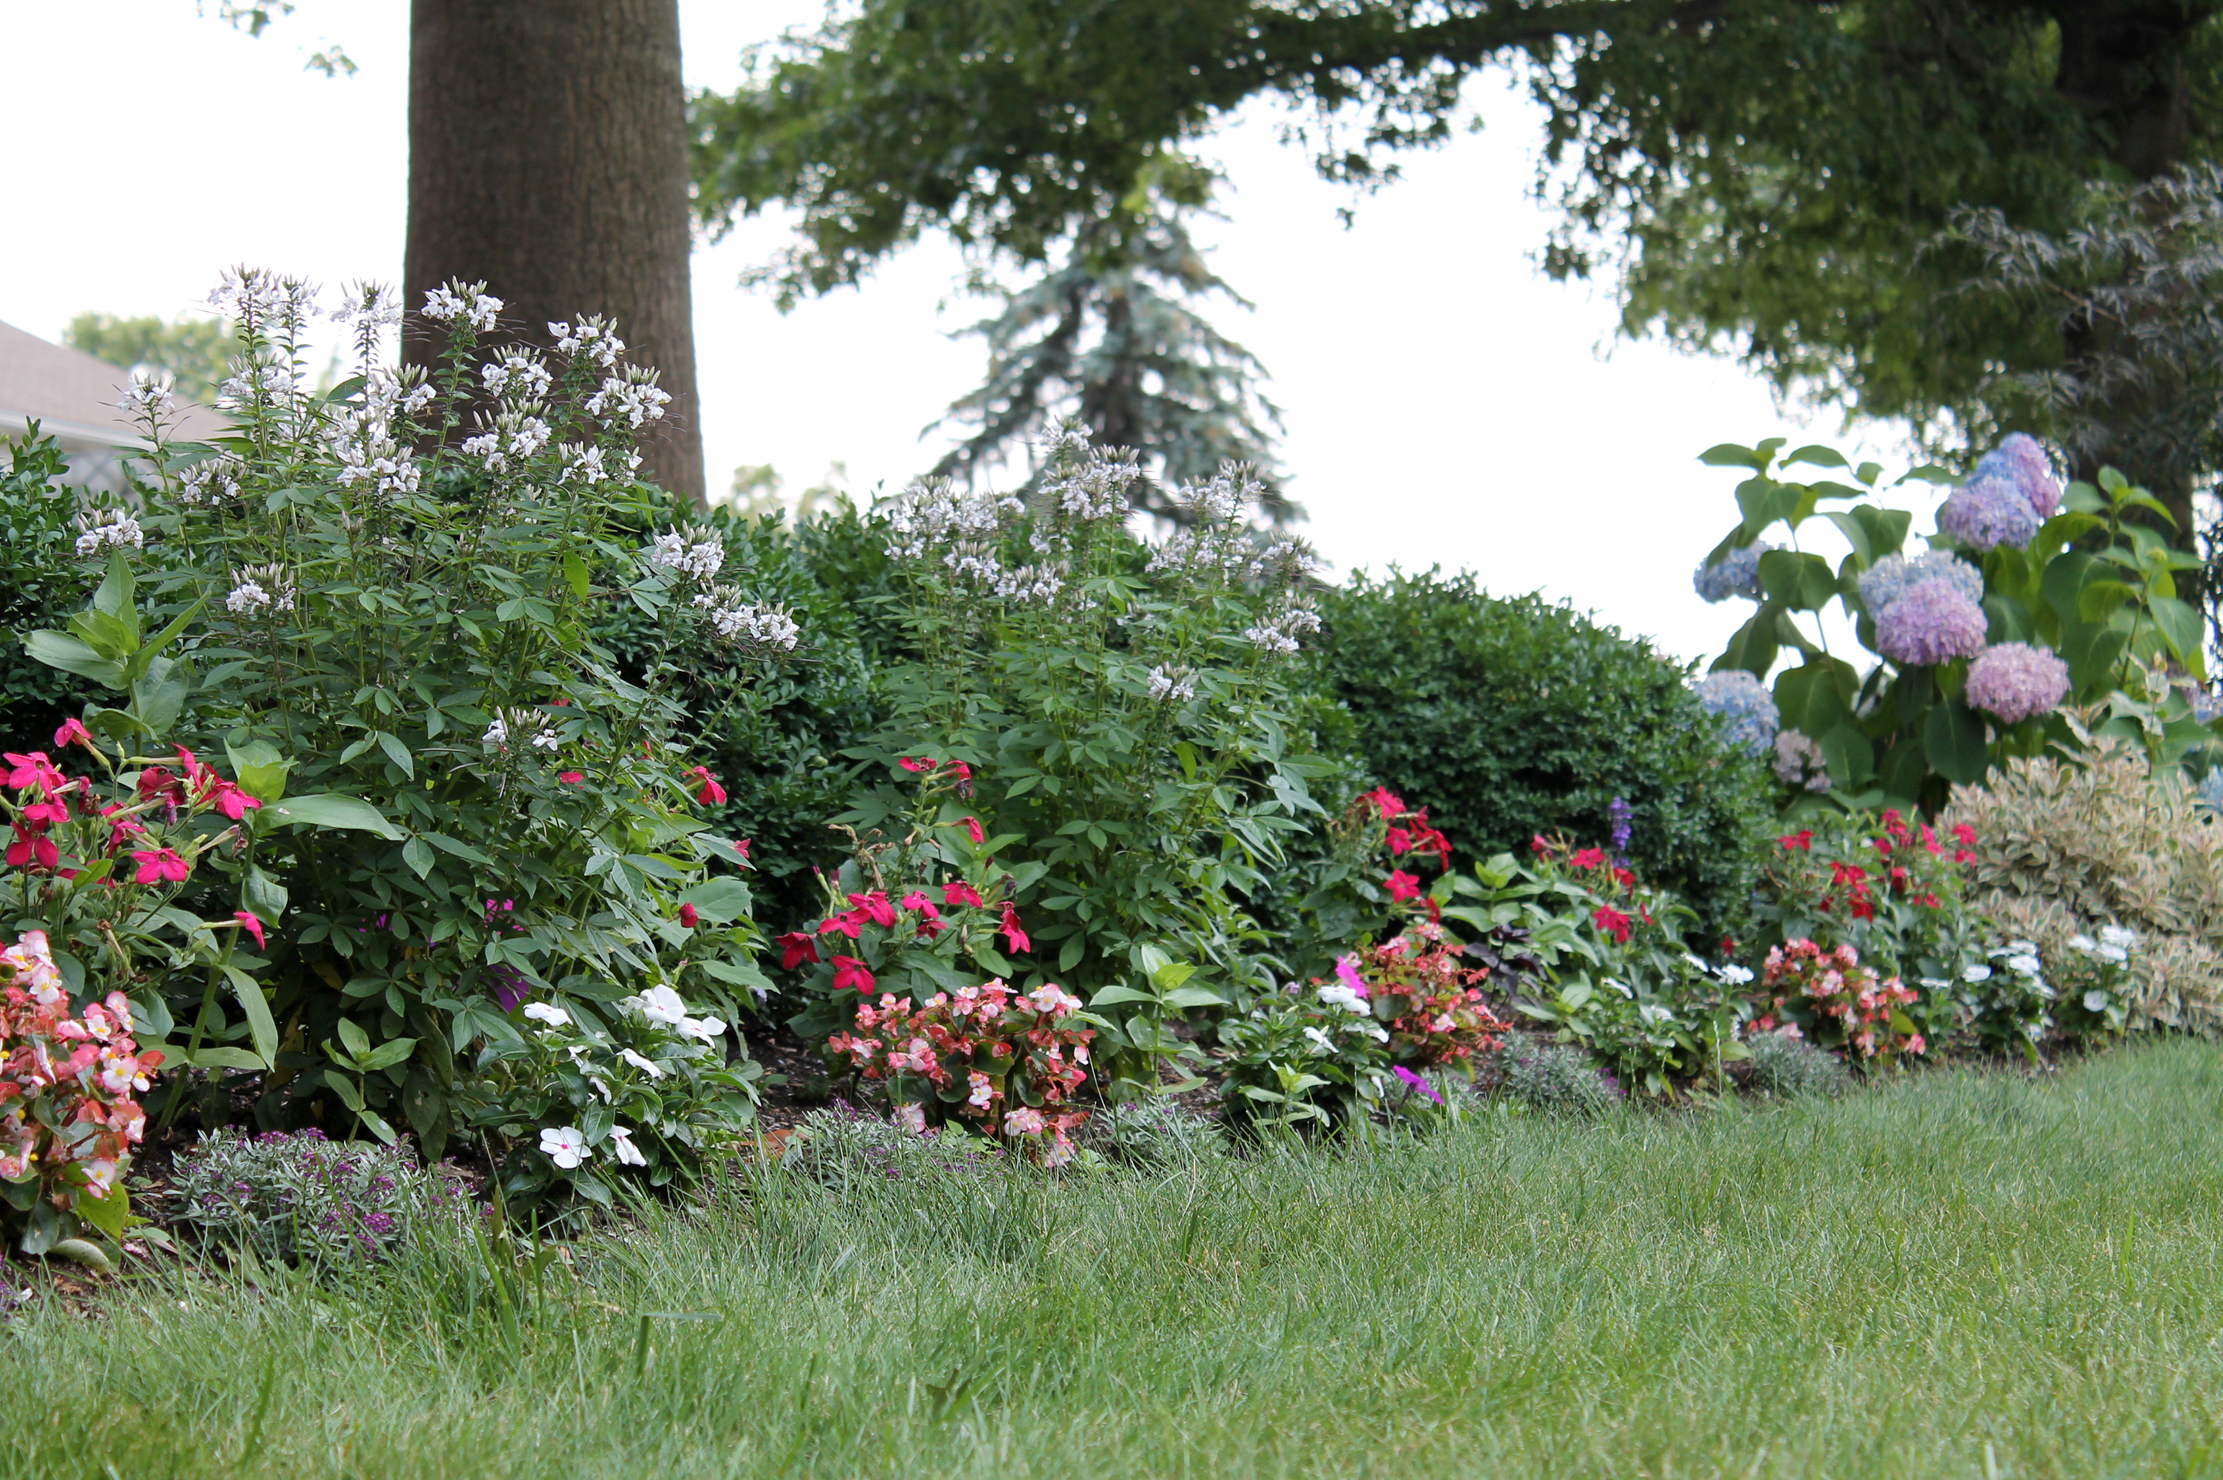 A meadow of annual flowers garden housecalls put together combos and repeat them izmirmasajfo Choice Image